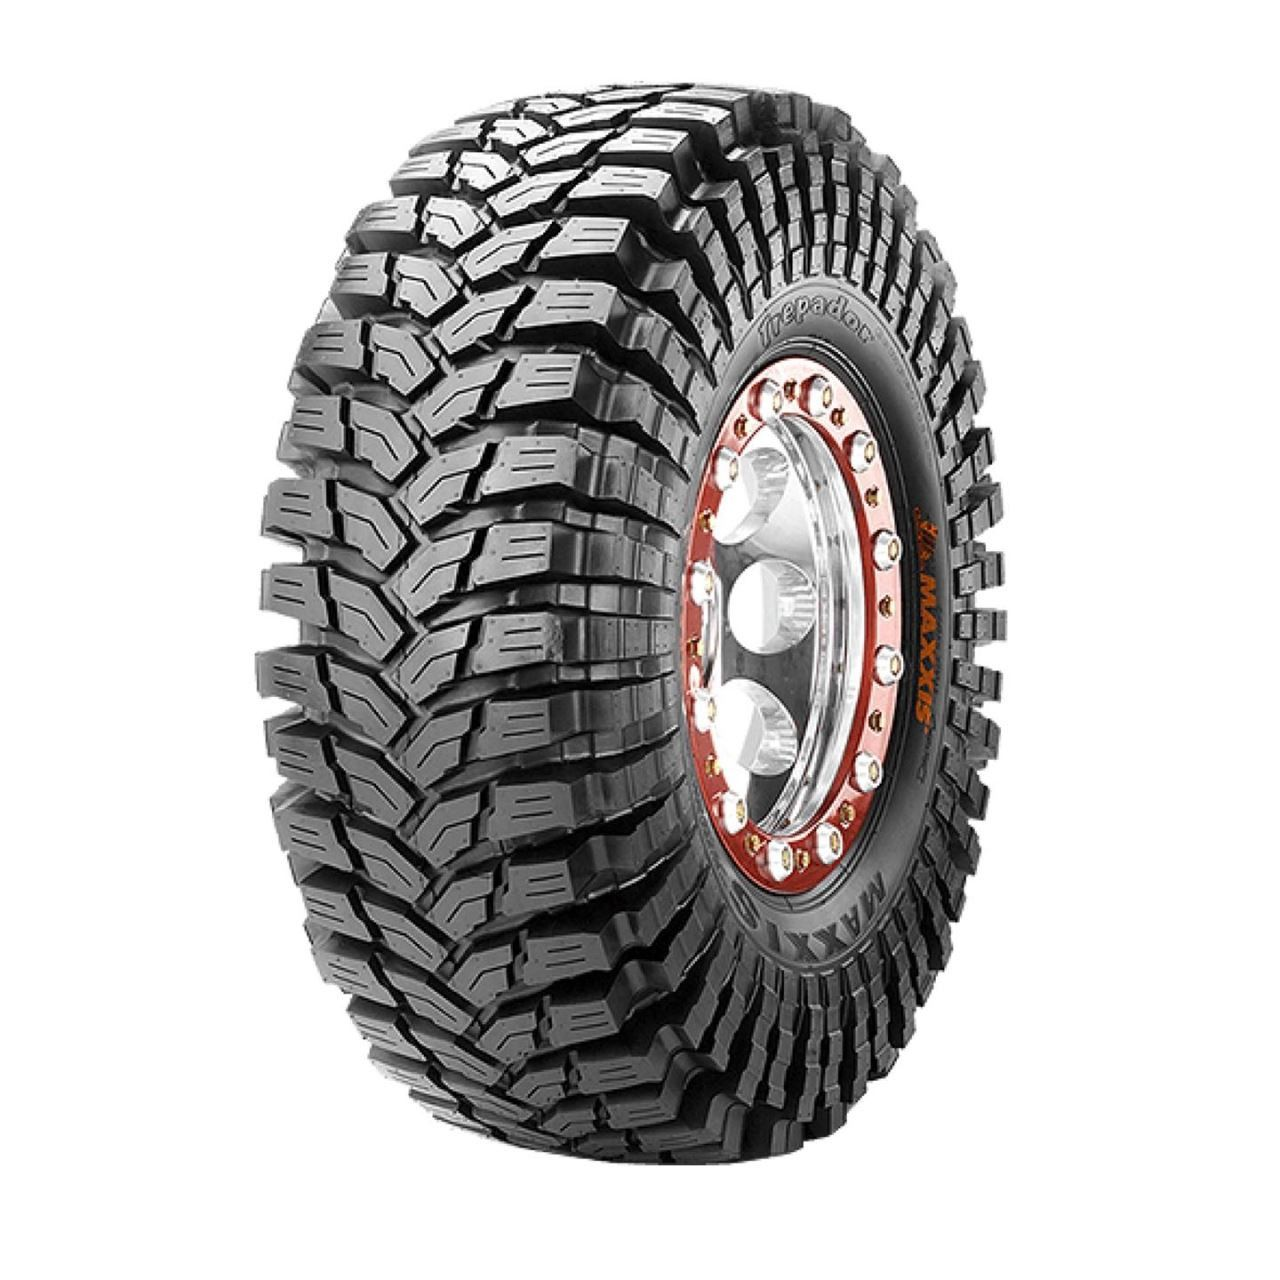 Anvelopa Vara MAXXIS M8060 COMPETITION 14/40R17 123K